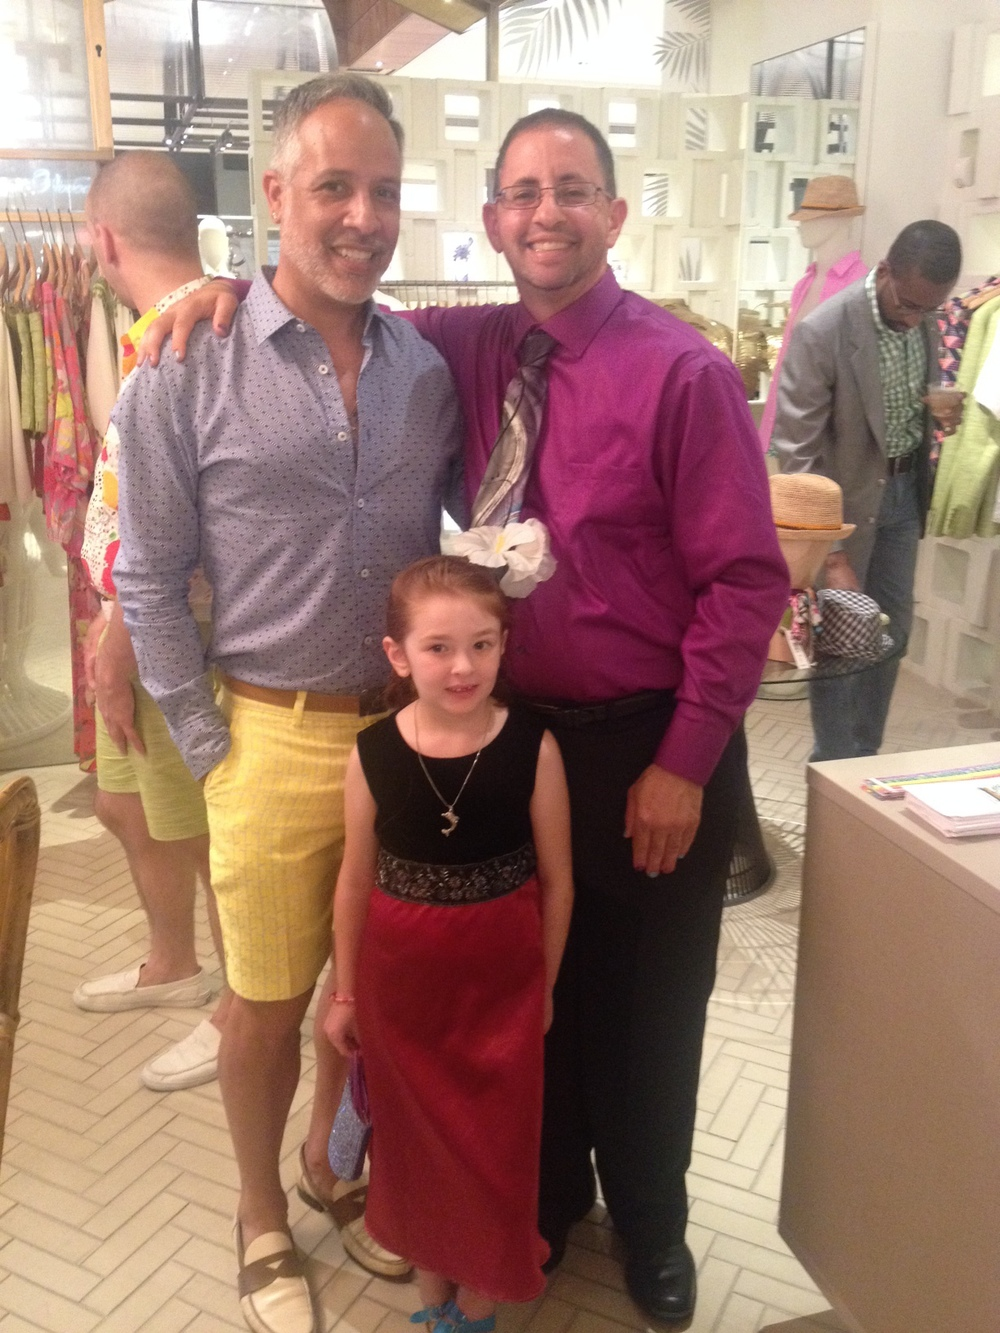 I'm pictured here with Pride School Atlanta Founder, Christian Zsalivetz and his most adorable daughter Zoe who was quite the fashionista!